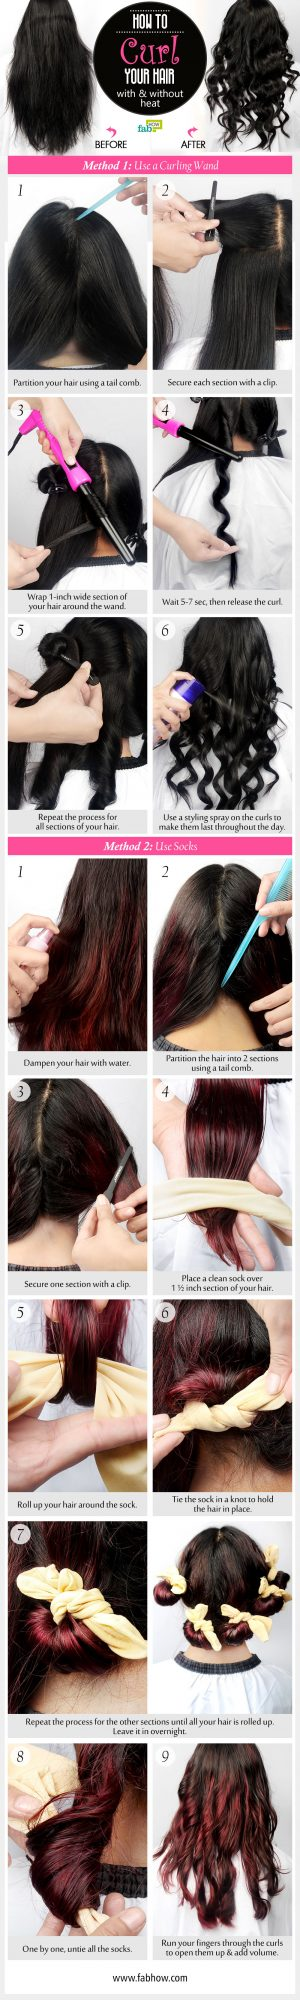 how to curl your hair summary